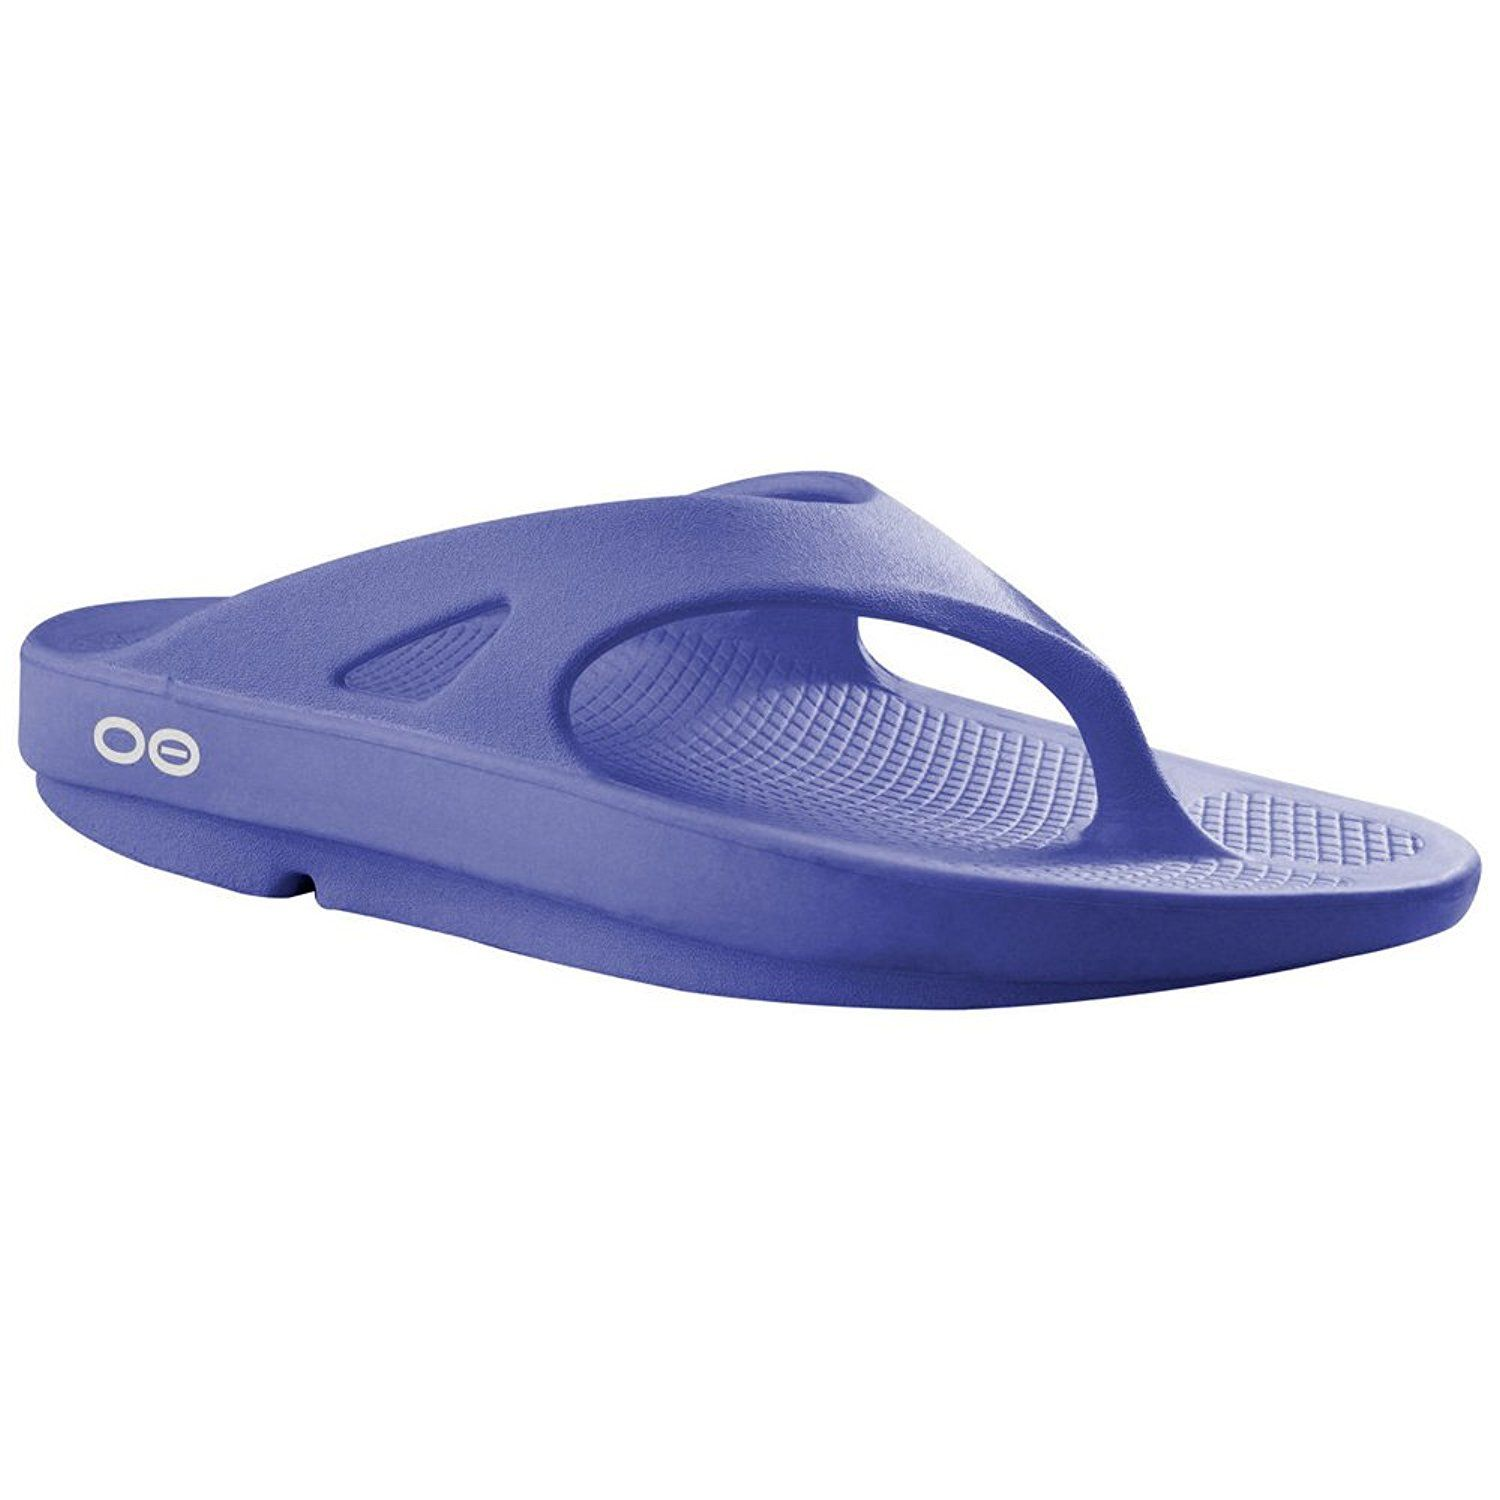 b19a94ae8947 Oofos Black Sport recovery thong sandals with oofoam technology. OOFOS  OOriginal Unisex Thong Sandal M6 W8 Periwinkle    Find out more about the  great ...